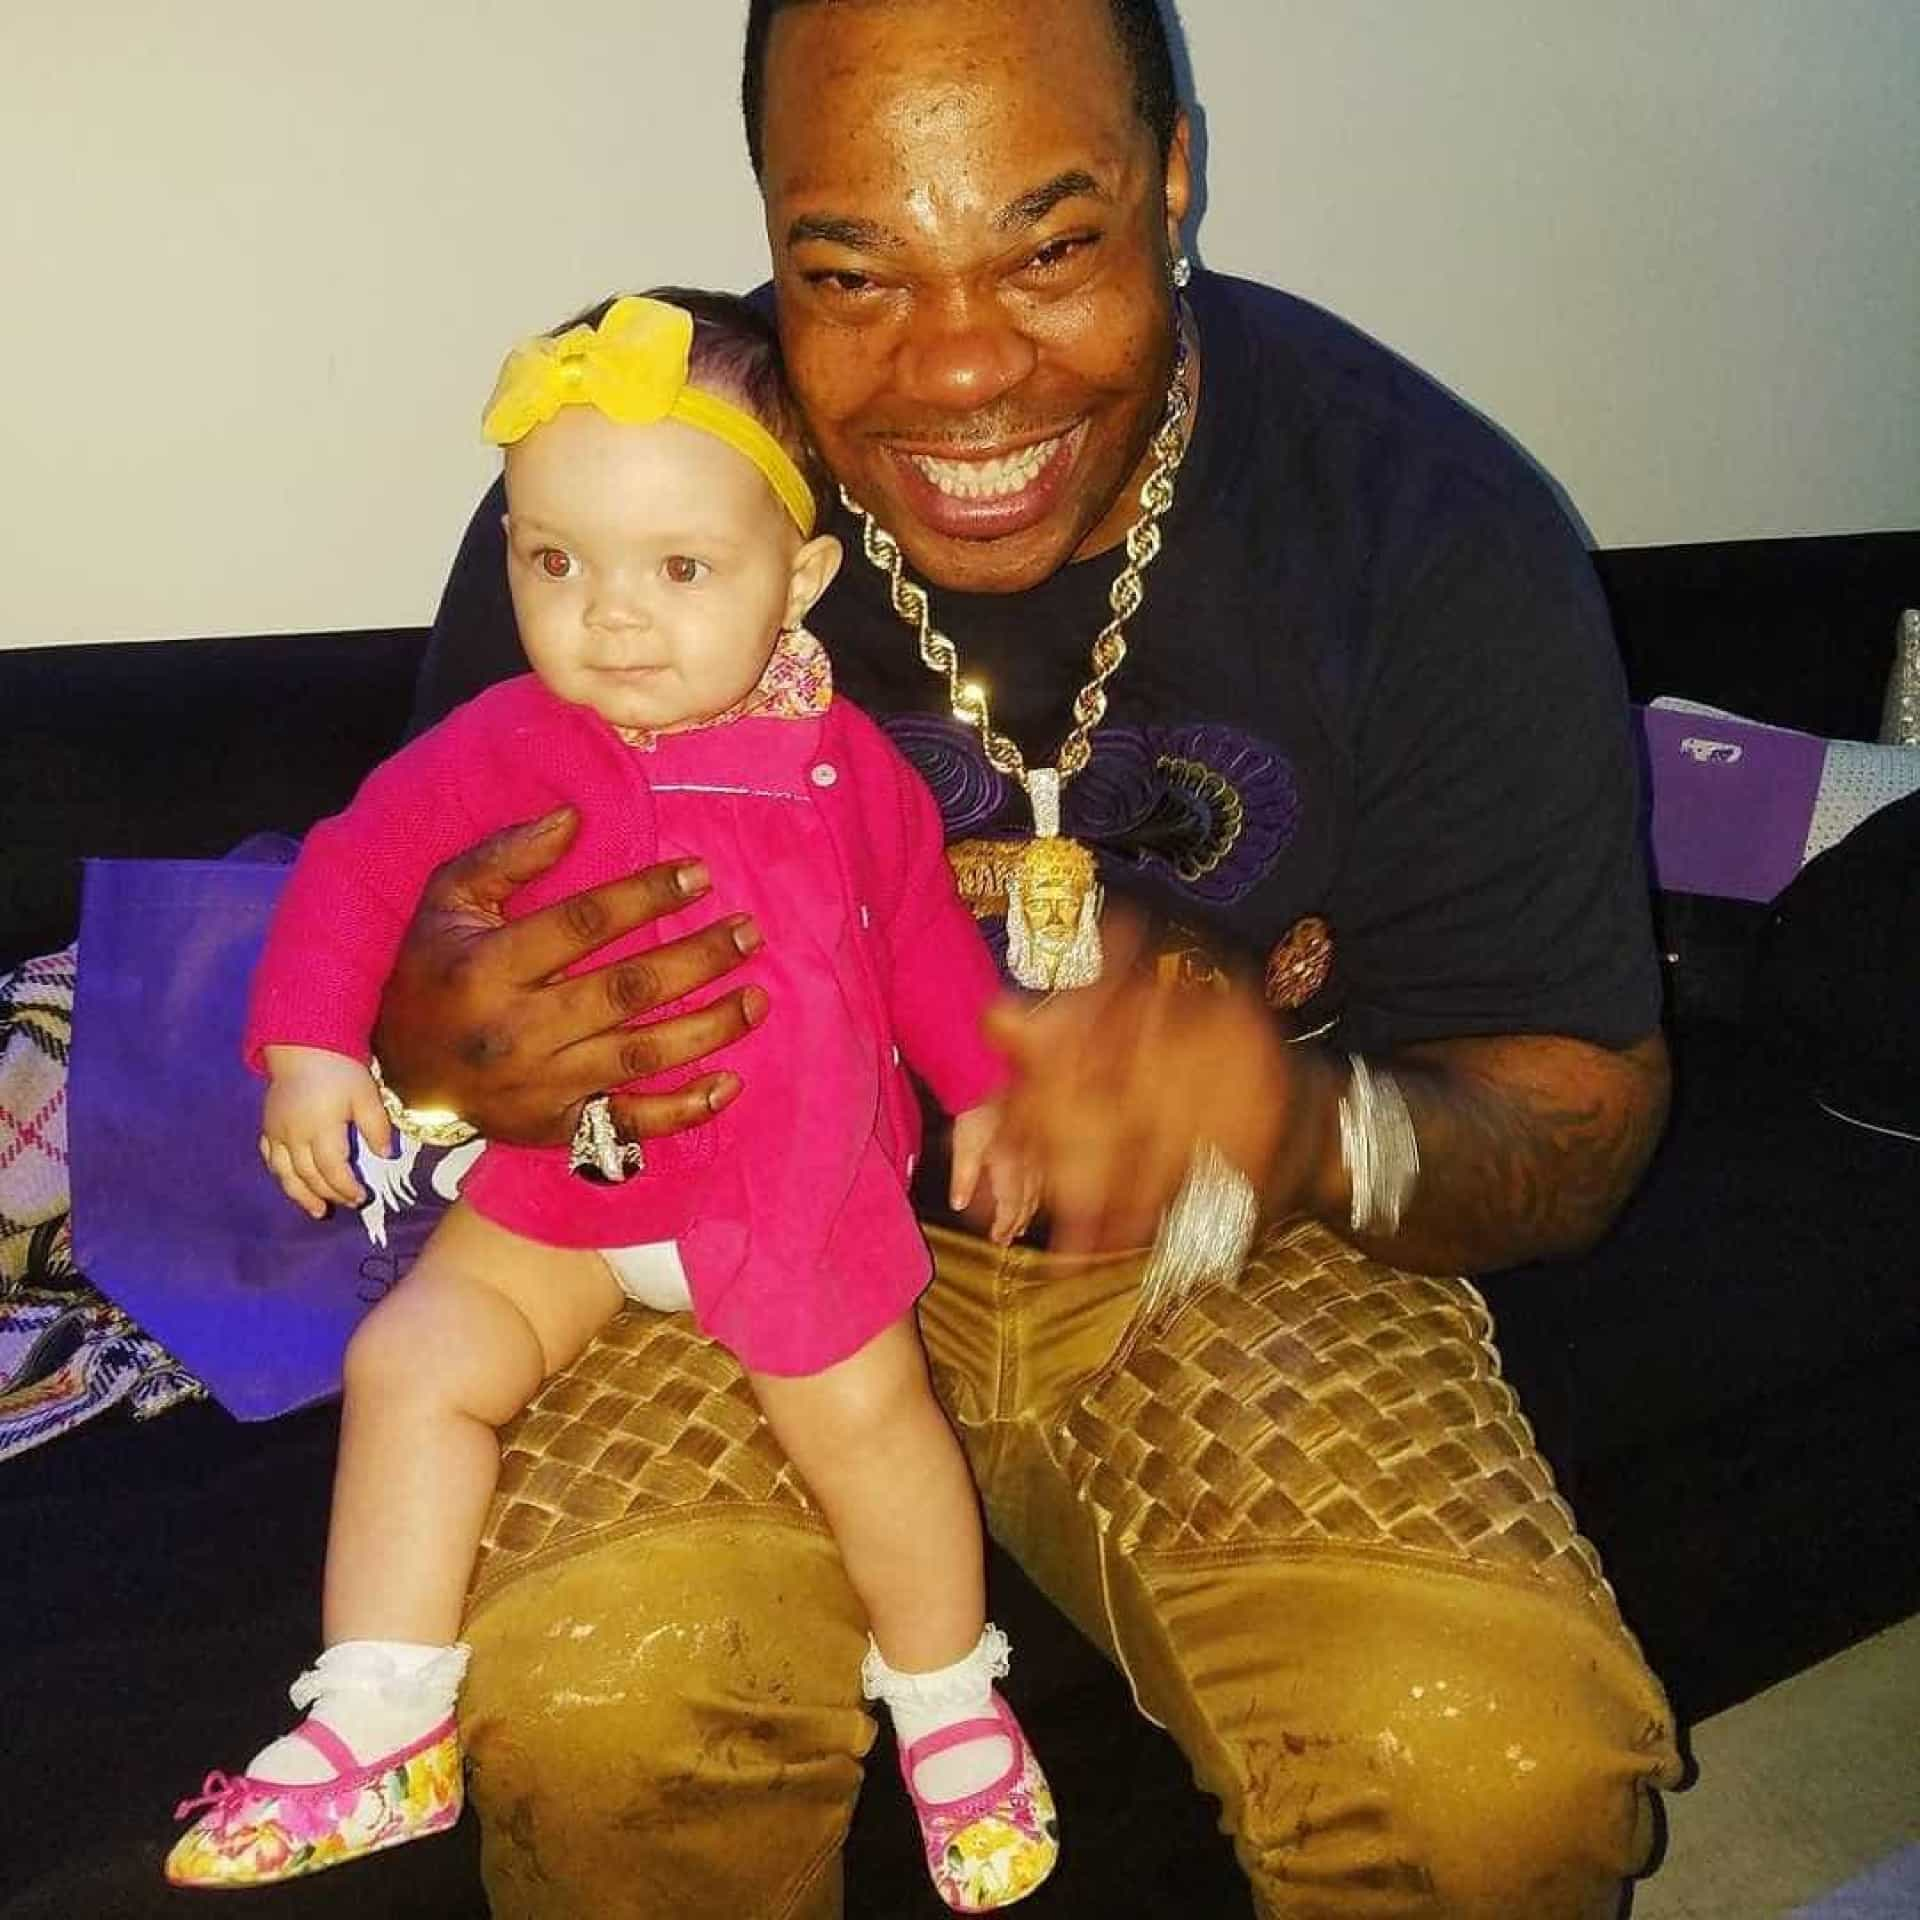 Filha do rapper Ice T conquista a Internet